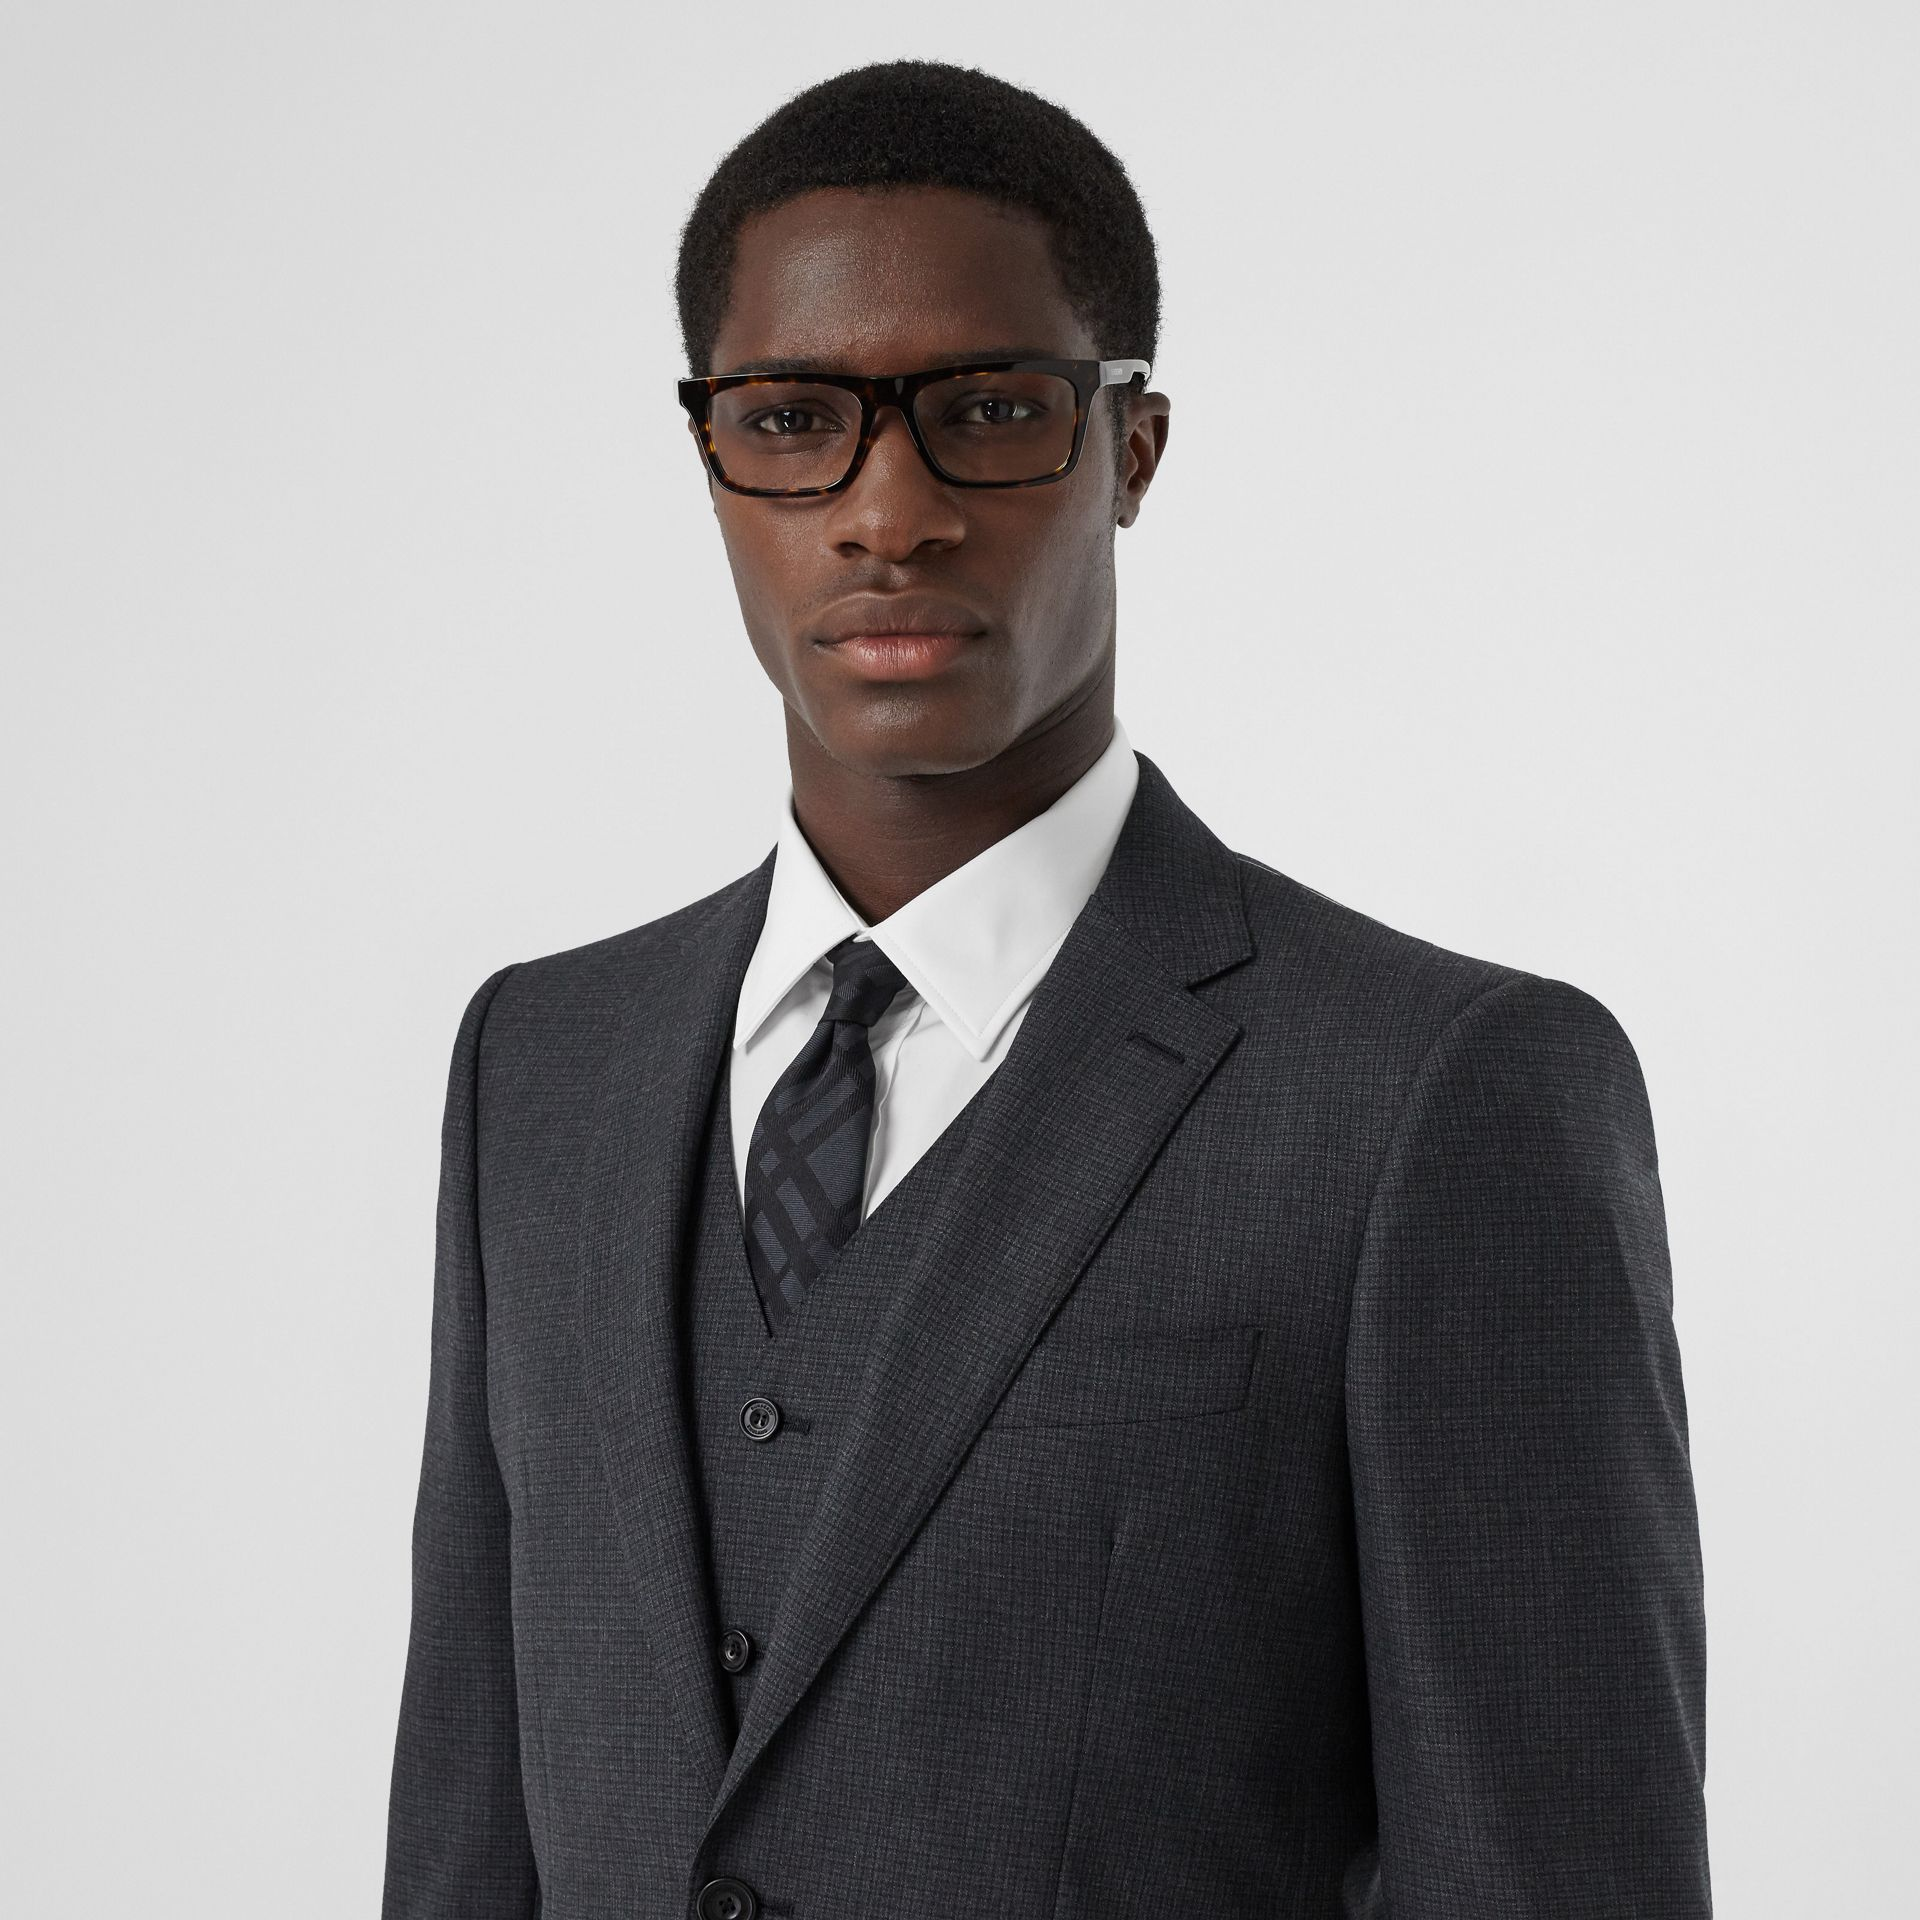 Classic Fit Windowpane Check Wool Three-piece Suit in Charcoal - Men | Burberry - gallery image 1